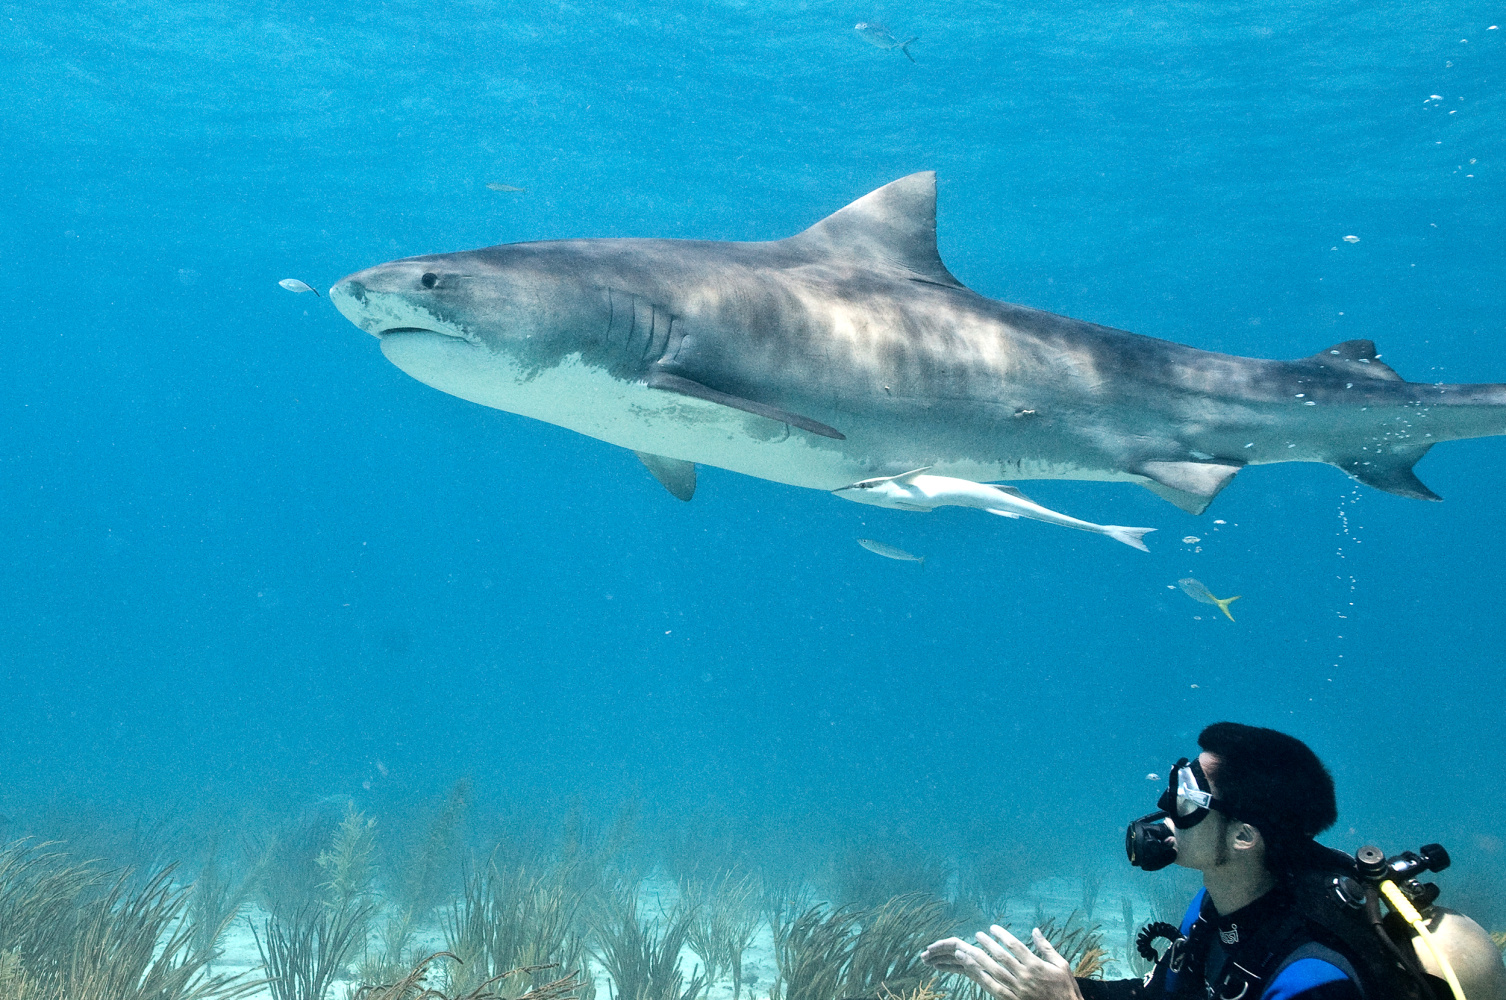 6 sharks that could be responsible for the north carolina attacks